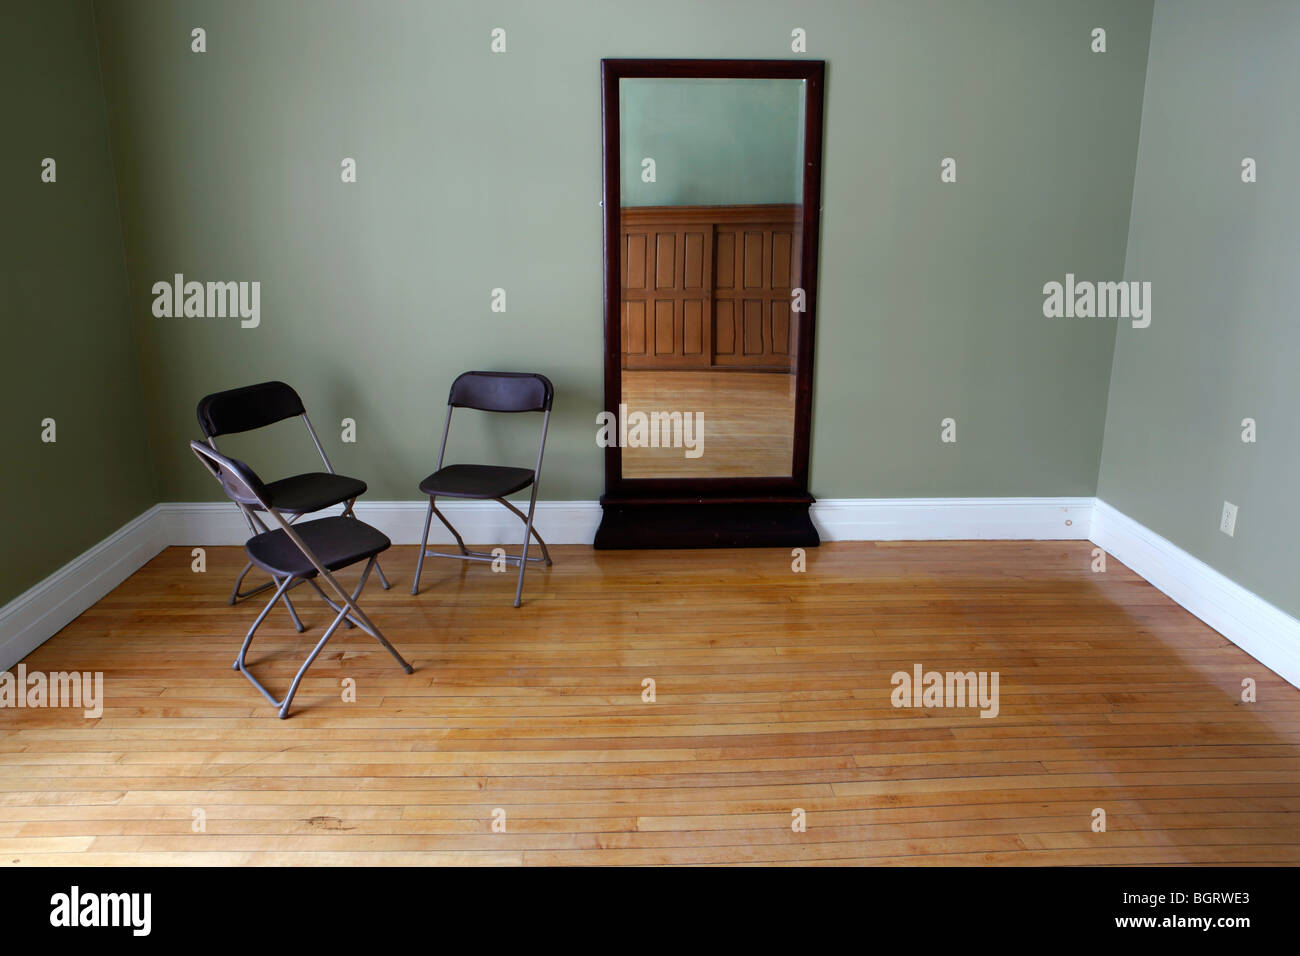 Empty room, three folding chairs, mirror, wood floors - Stock Image